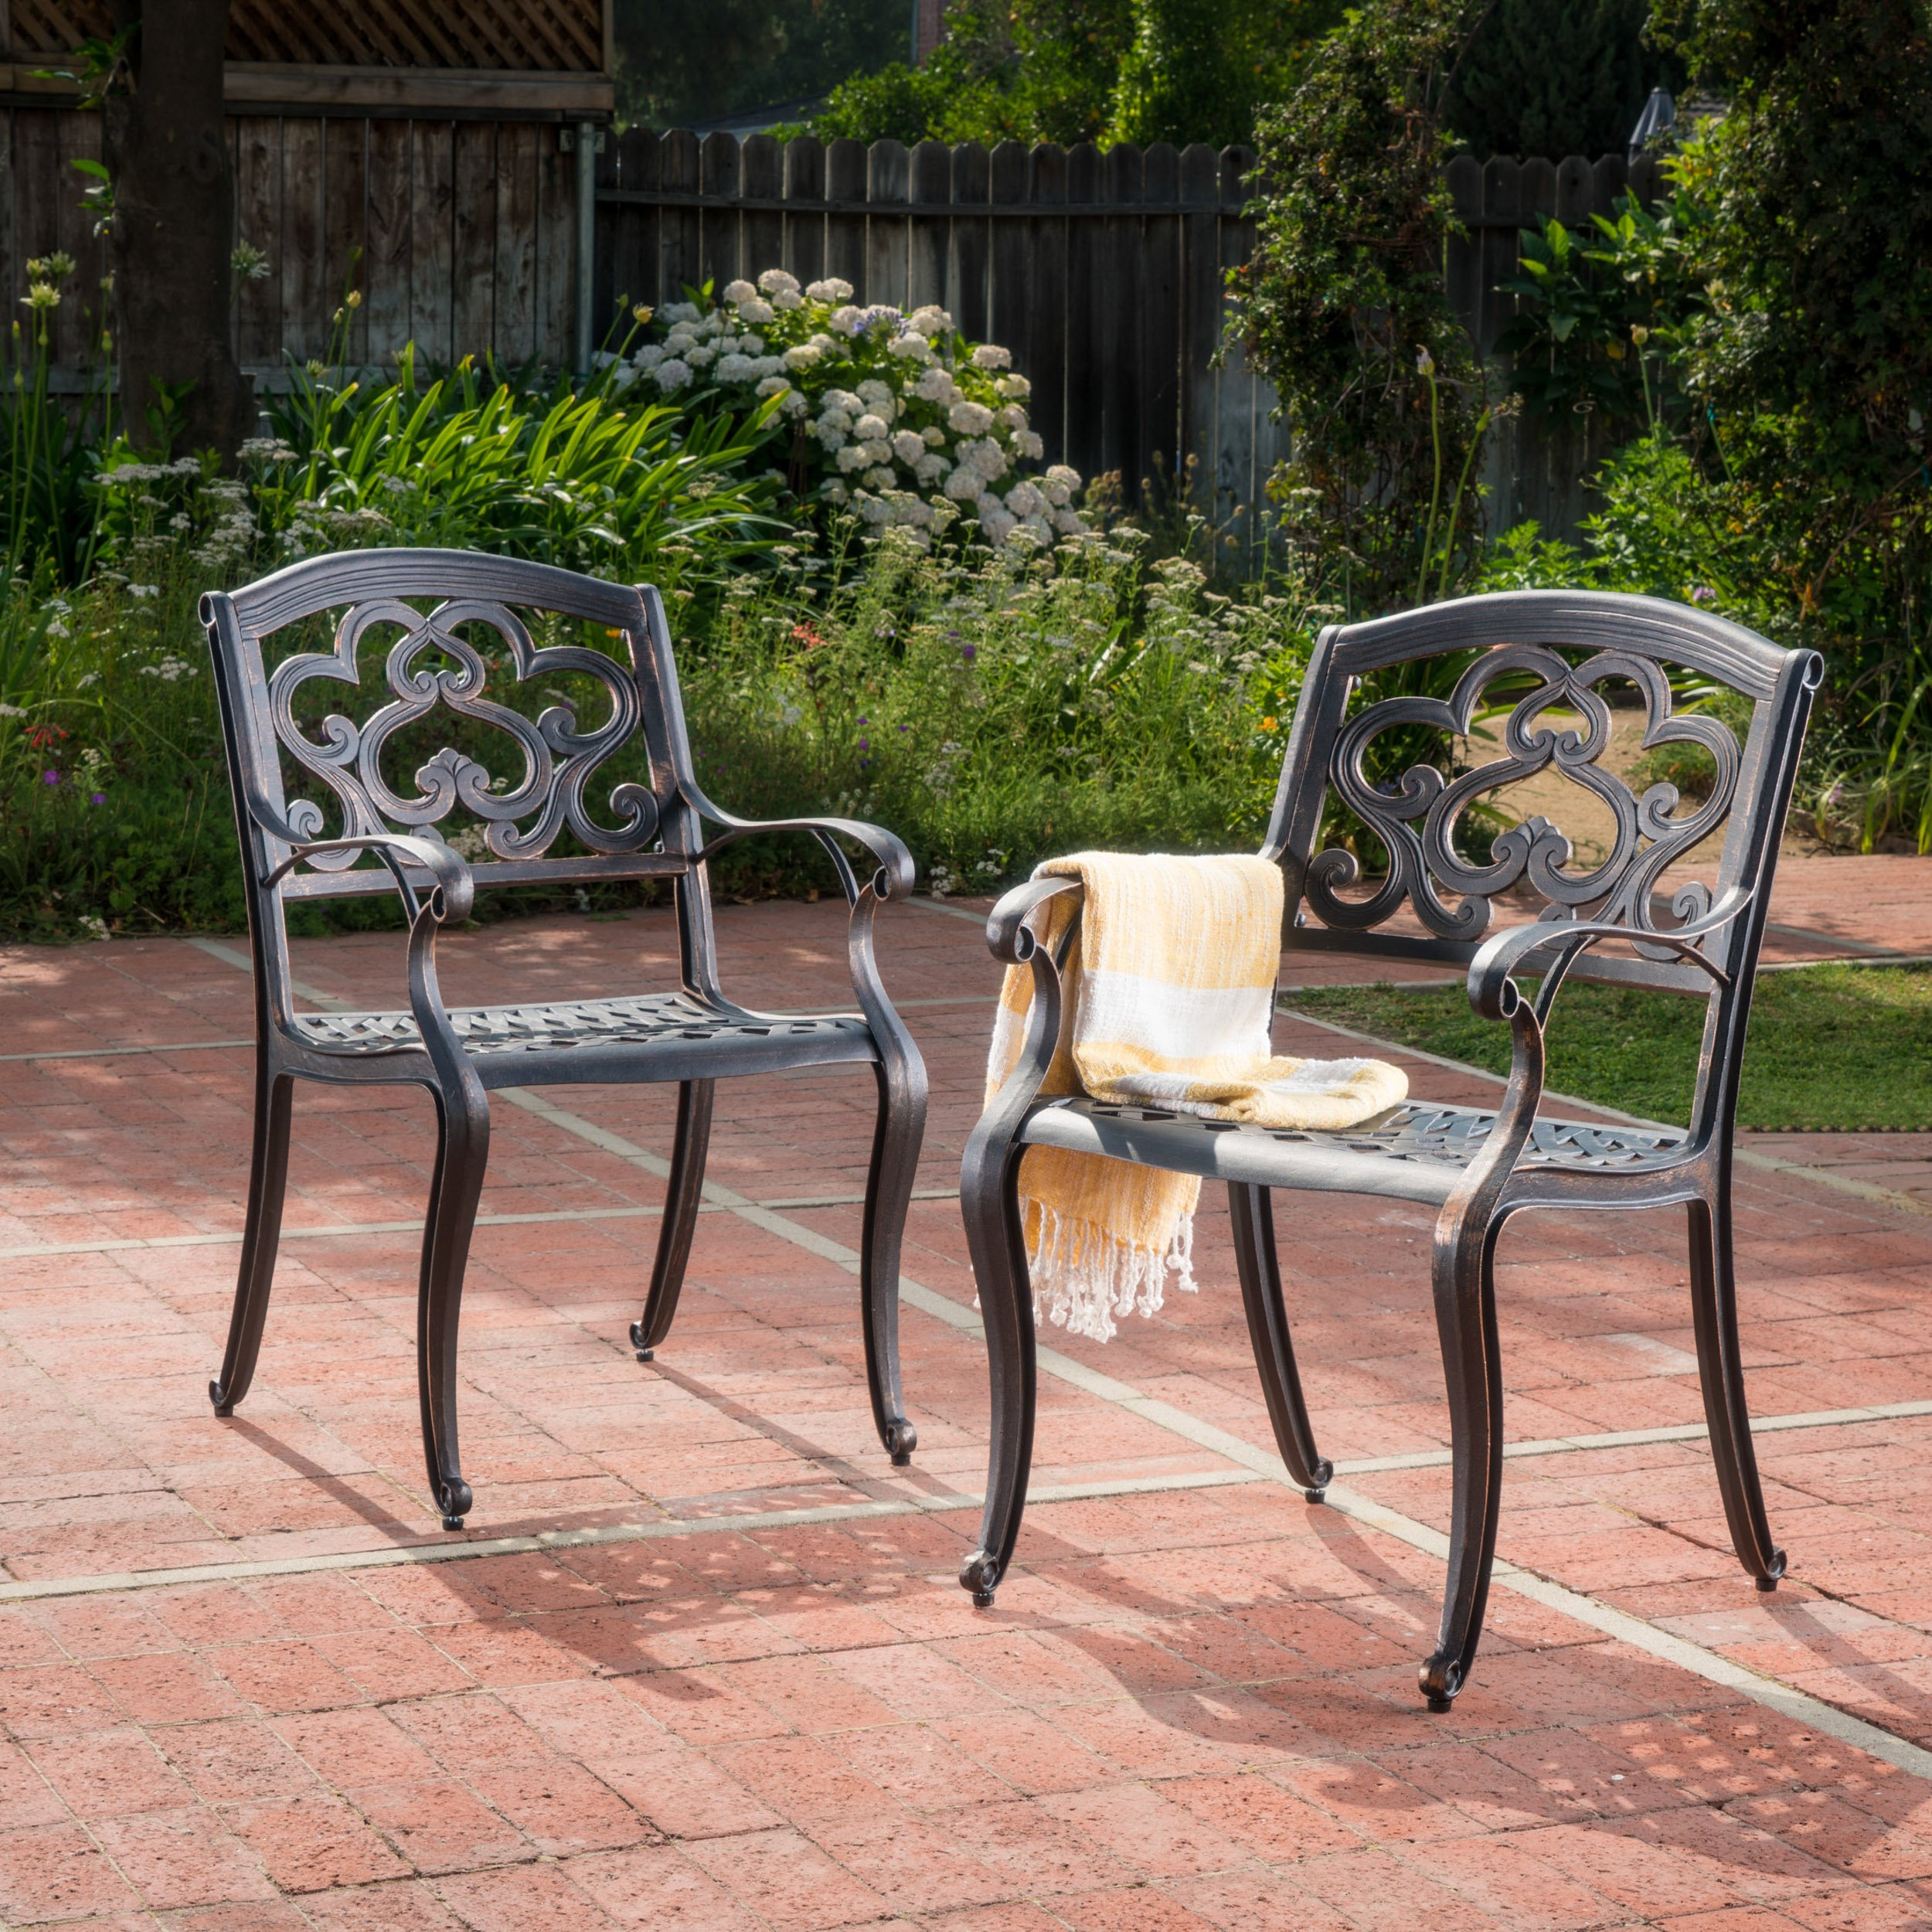 Christopher Knight Home 300680 Augusta Outdoor Cast Aluminum Dining Chairs (Set of 2), Patina Copper